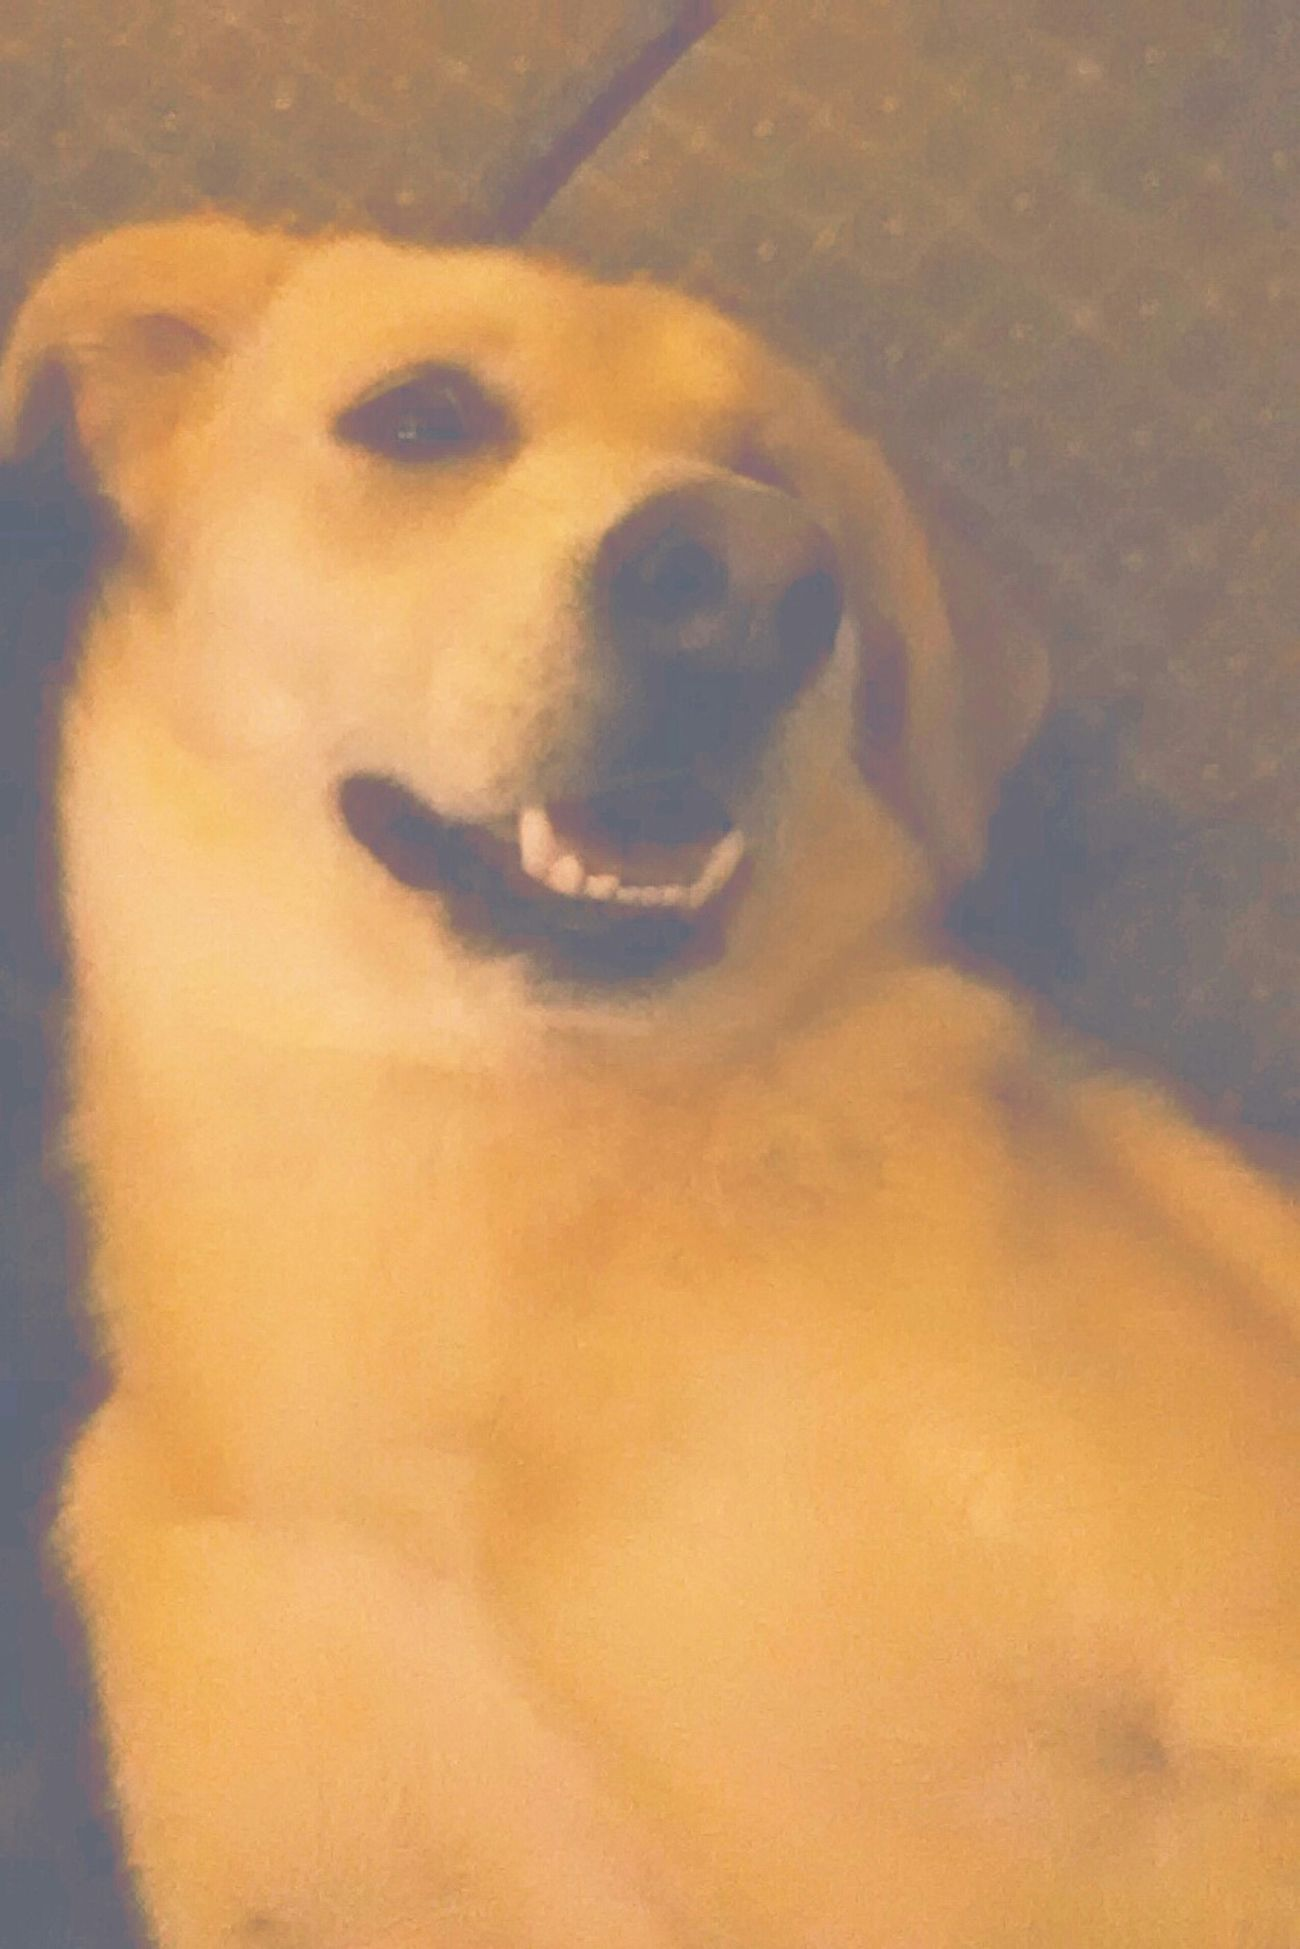 Sasha laying next to her mommie ! she totally cropped me out of the picture by shoving me haha its all good though. I still love her My Babe <3 German Shepherd Husky Collie Mix Baddest Boss  The Love Of My Life ♥